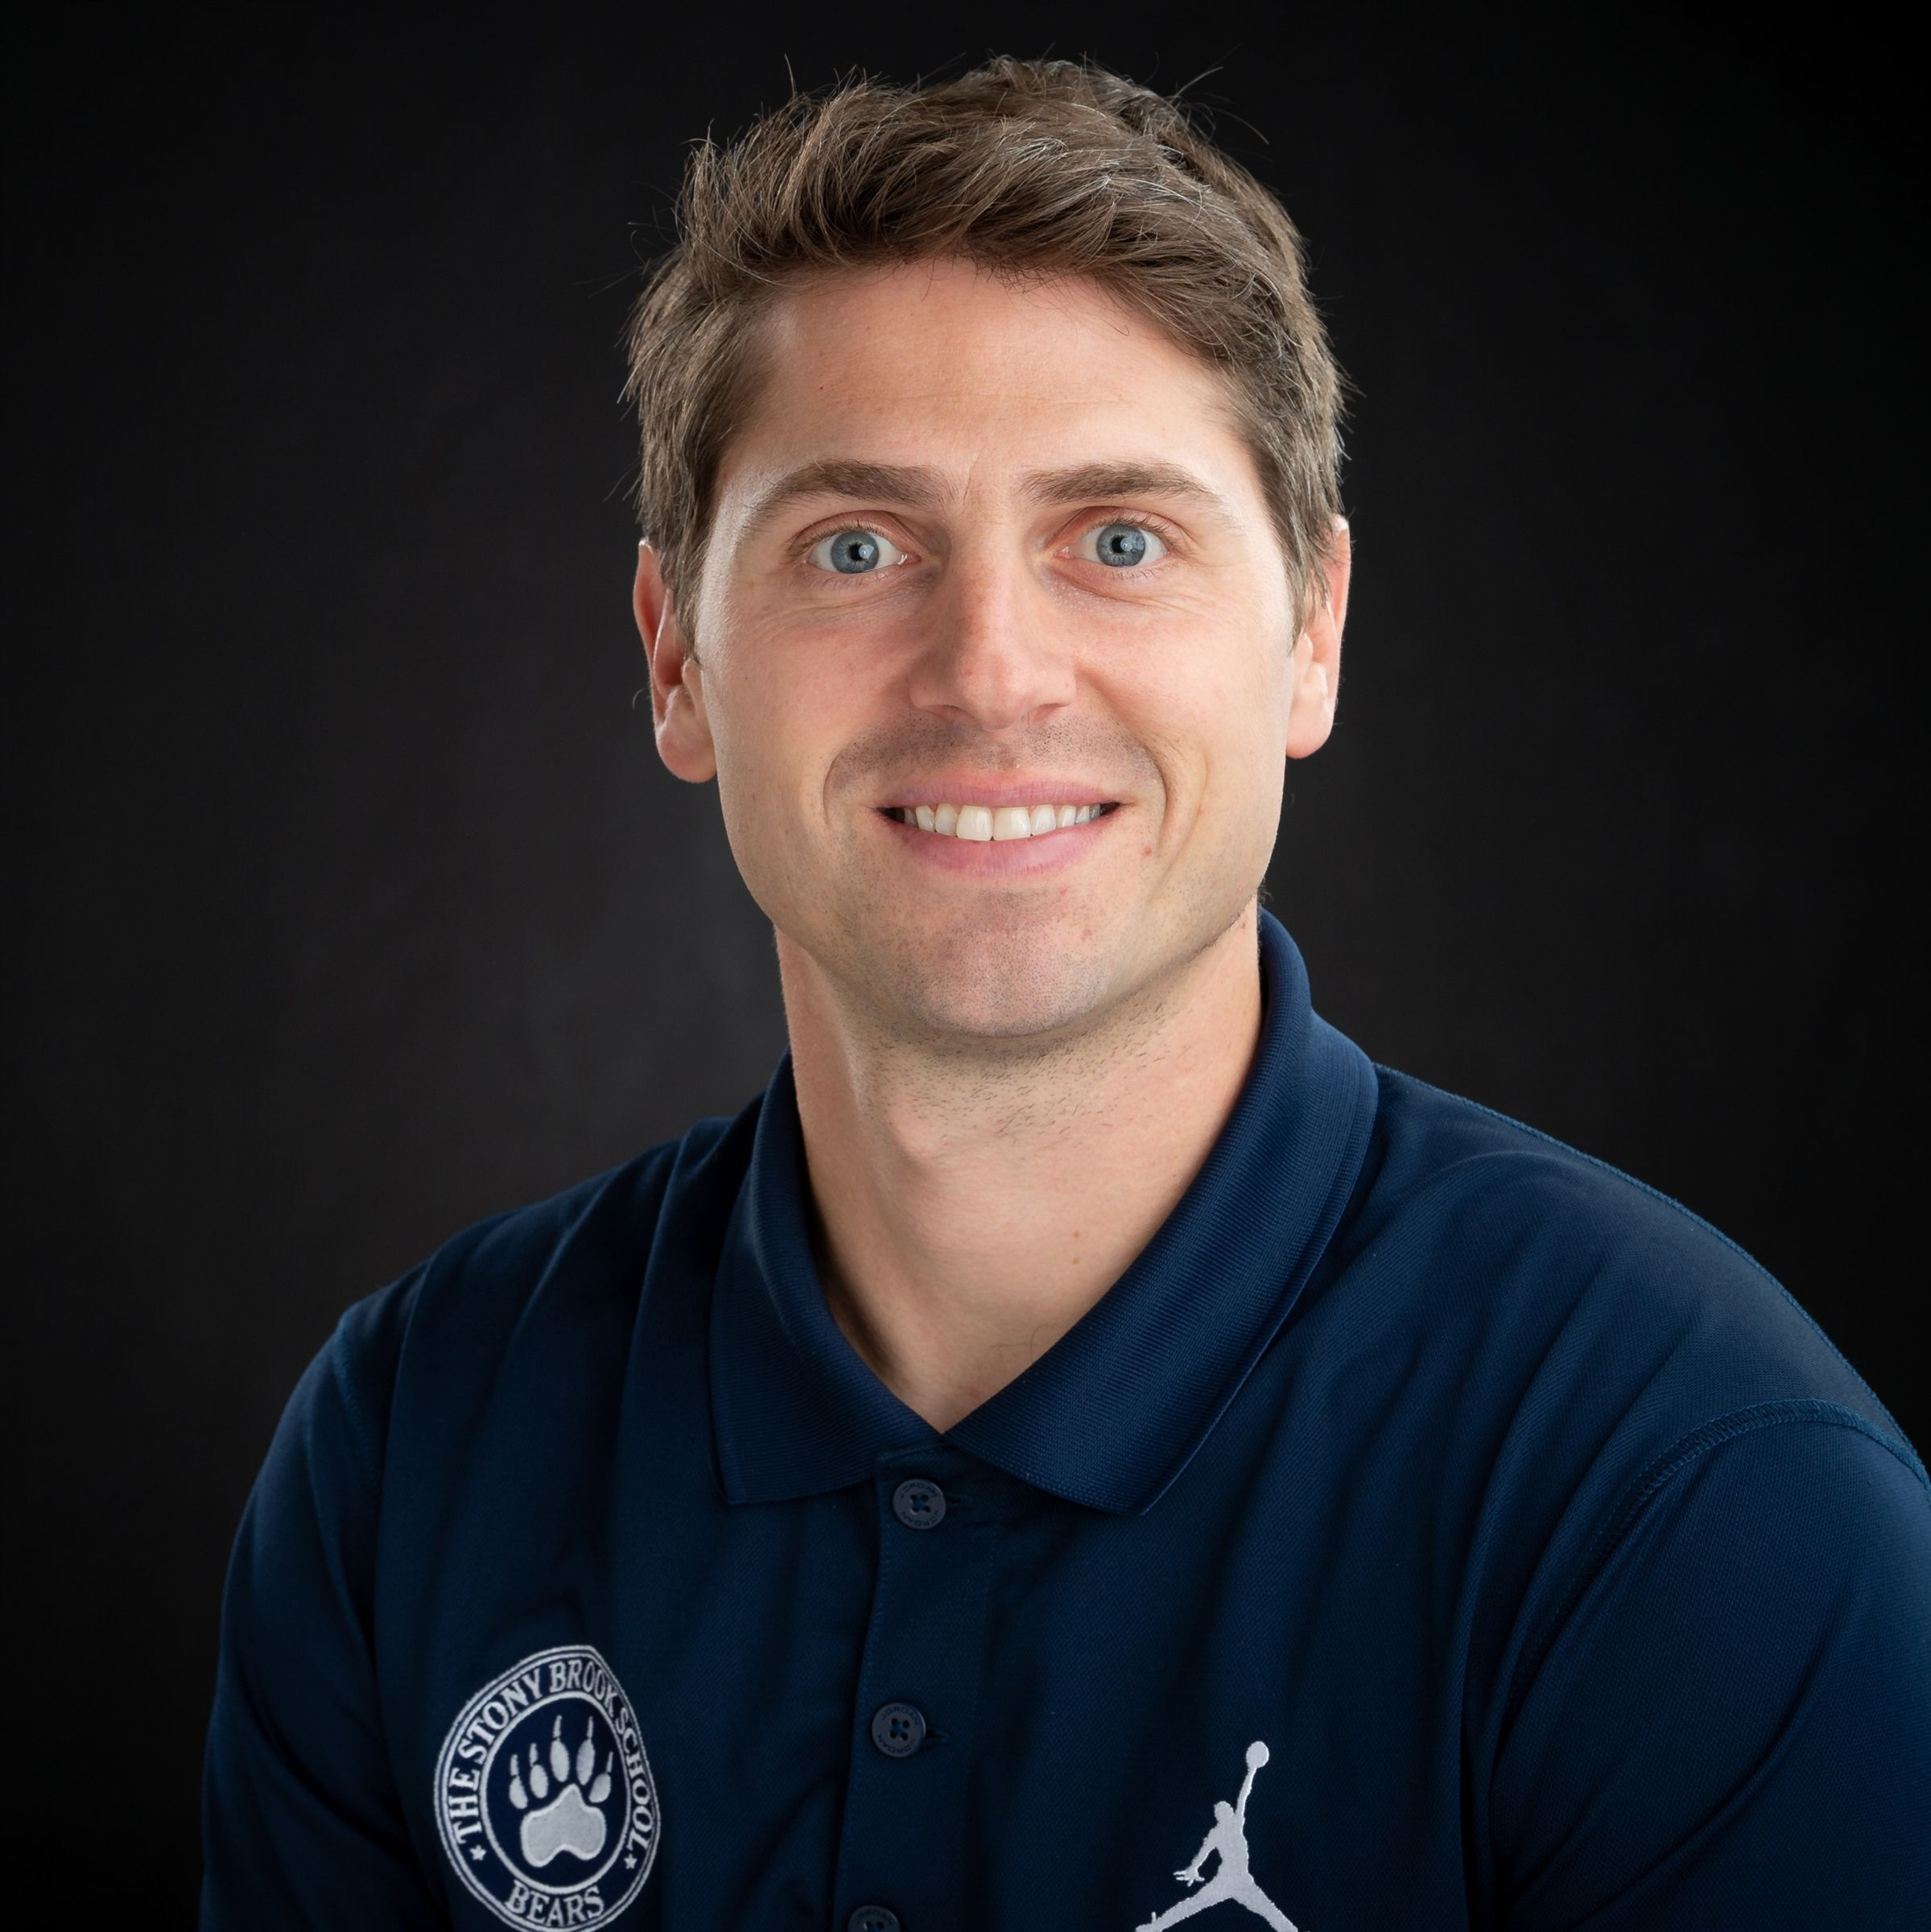 Dan Hickey '04, Director of Athletics